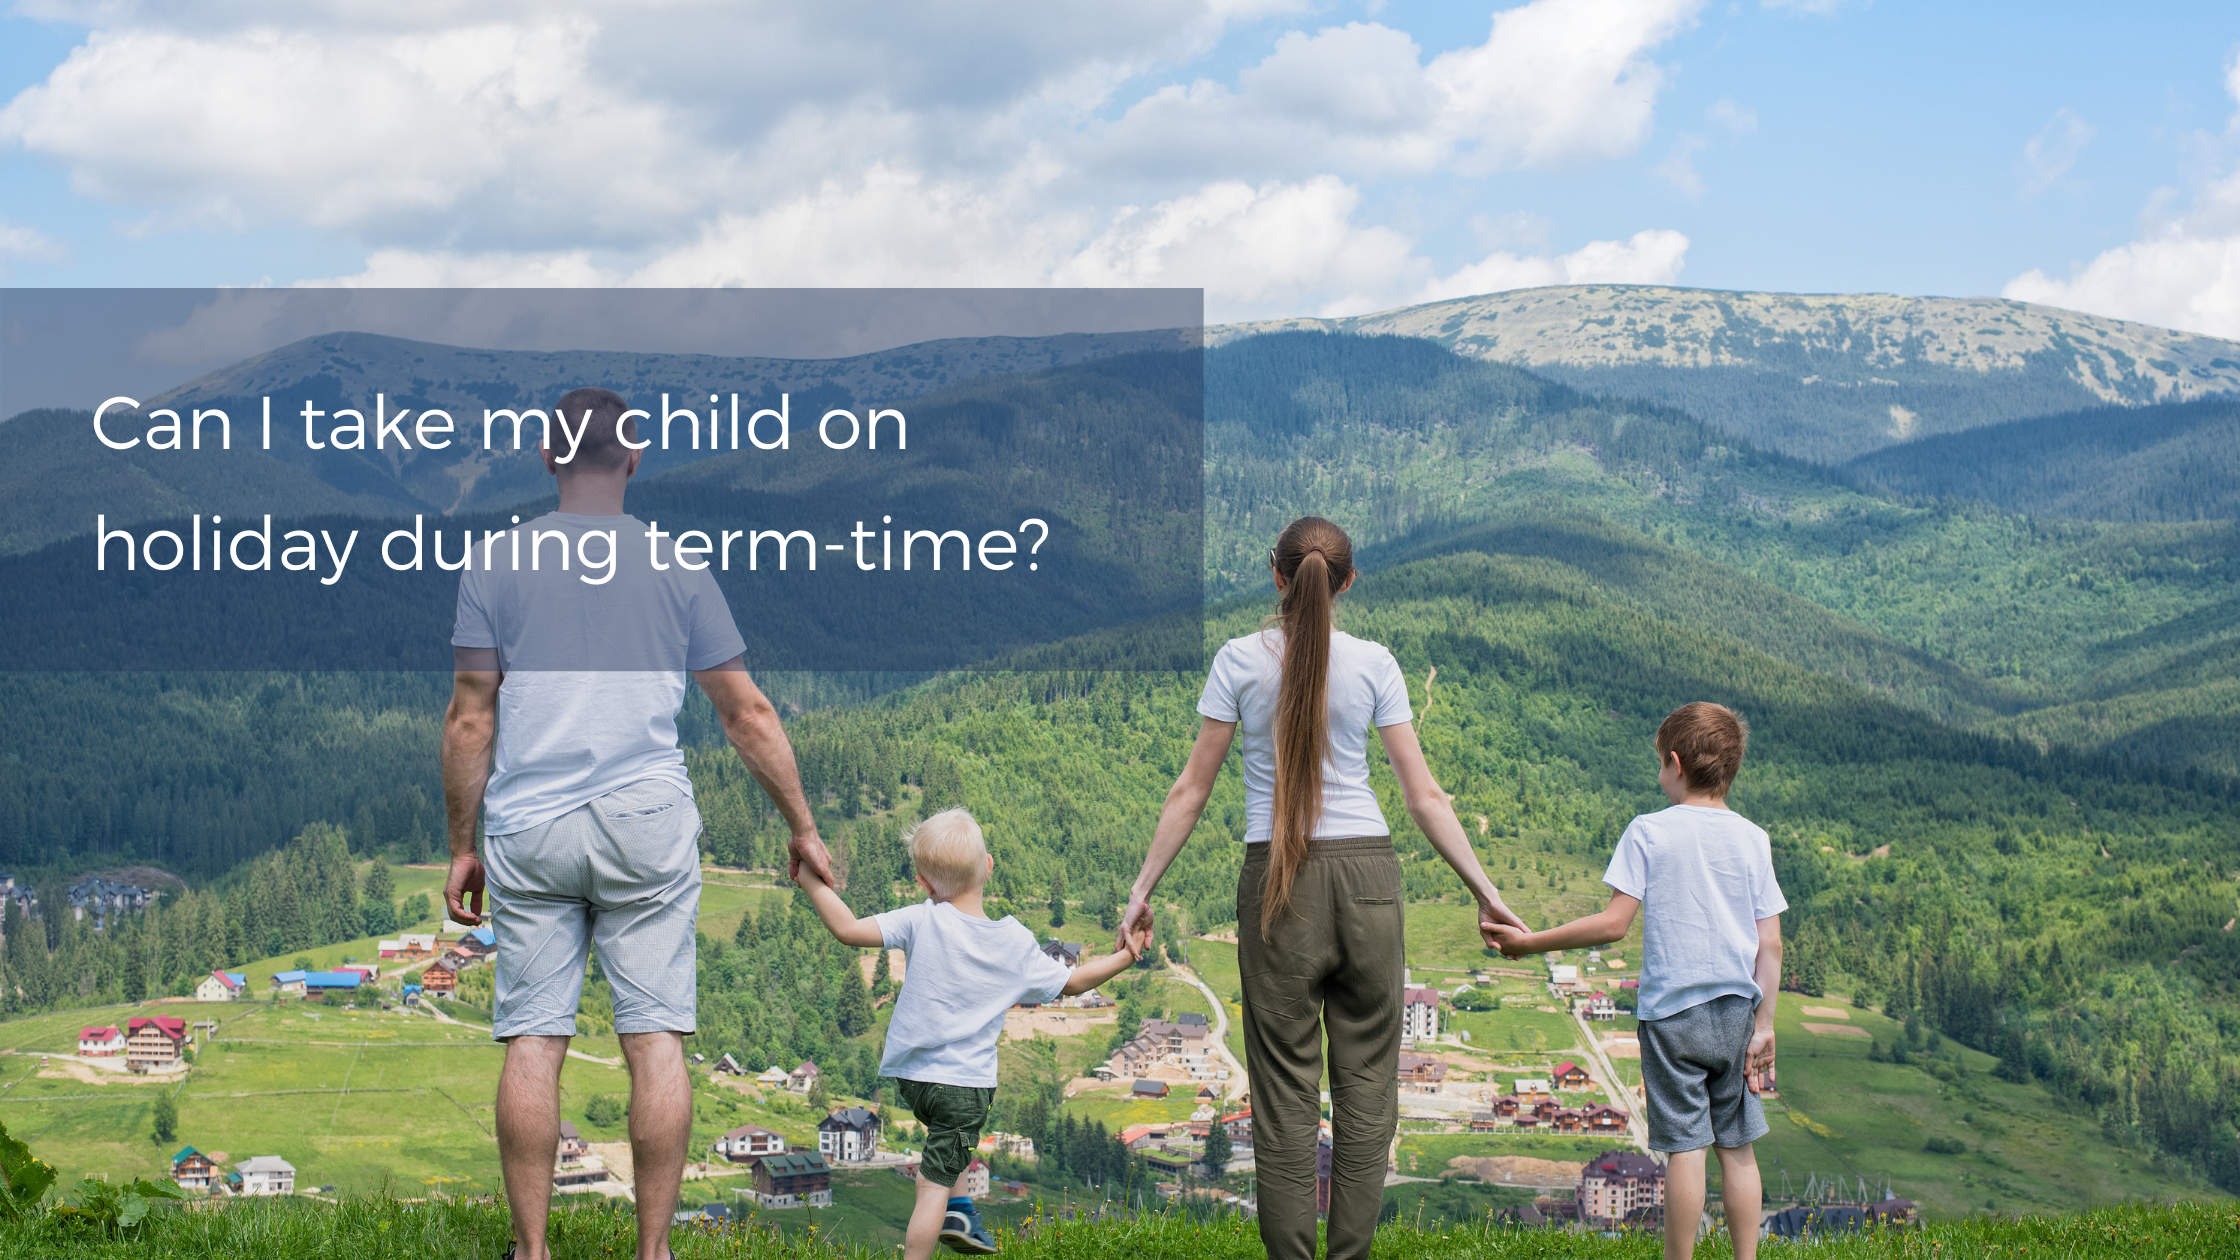 COVID-19 and term-time holidays